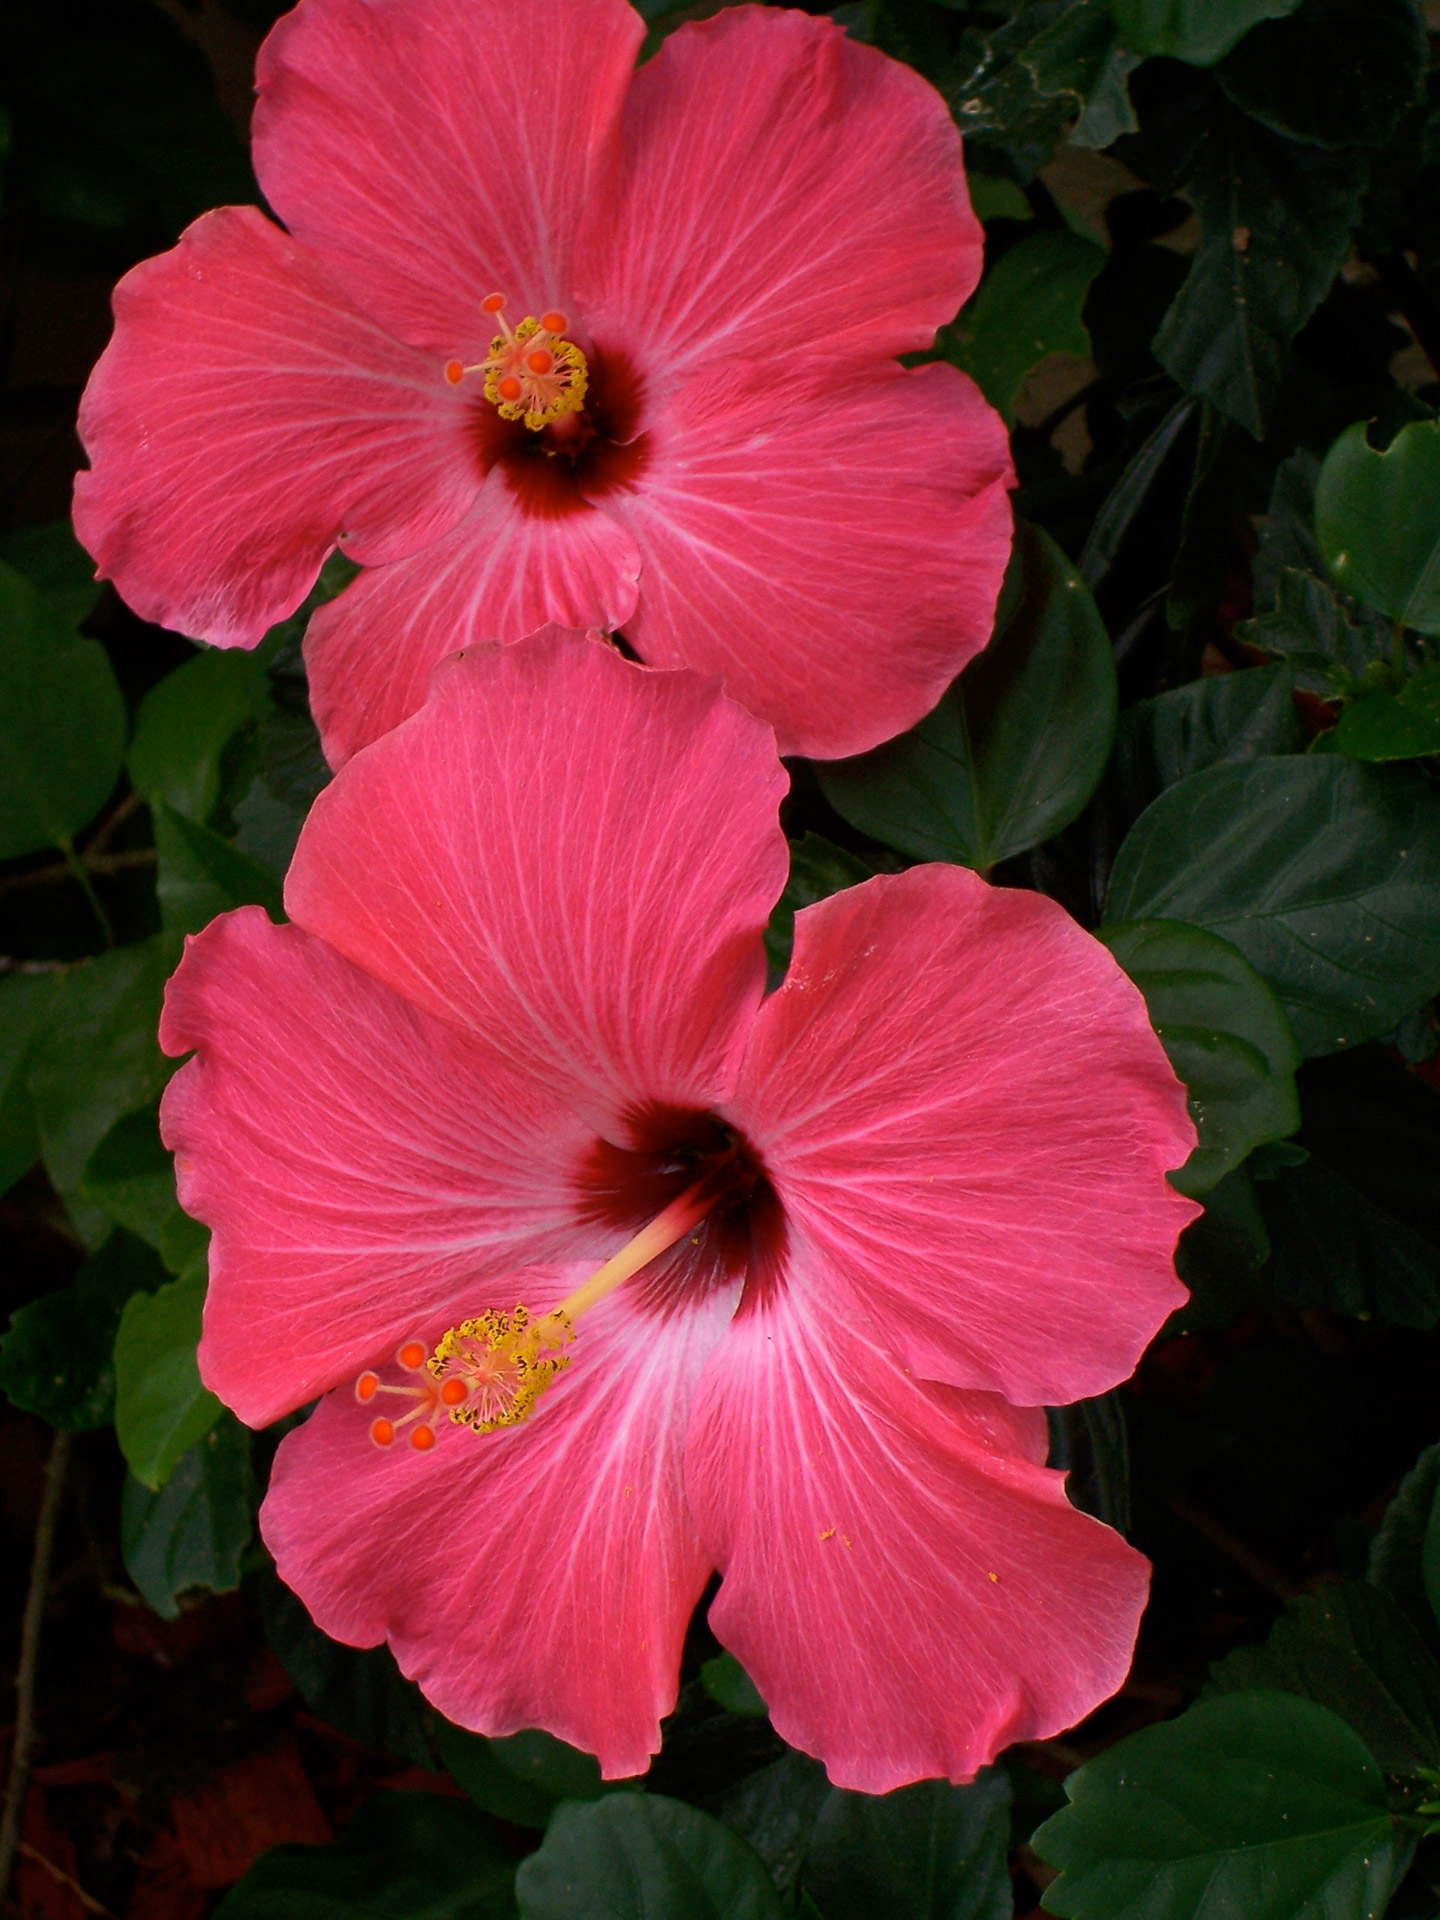 Free pictures of hibiscus flowers banner Pink Hibiscus Flowers Free Stock Photo - Public Domain Pictures banner